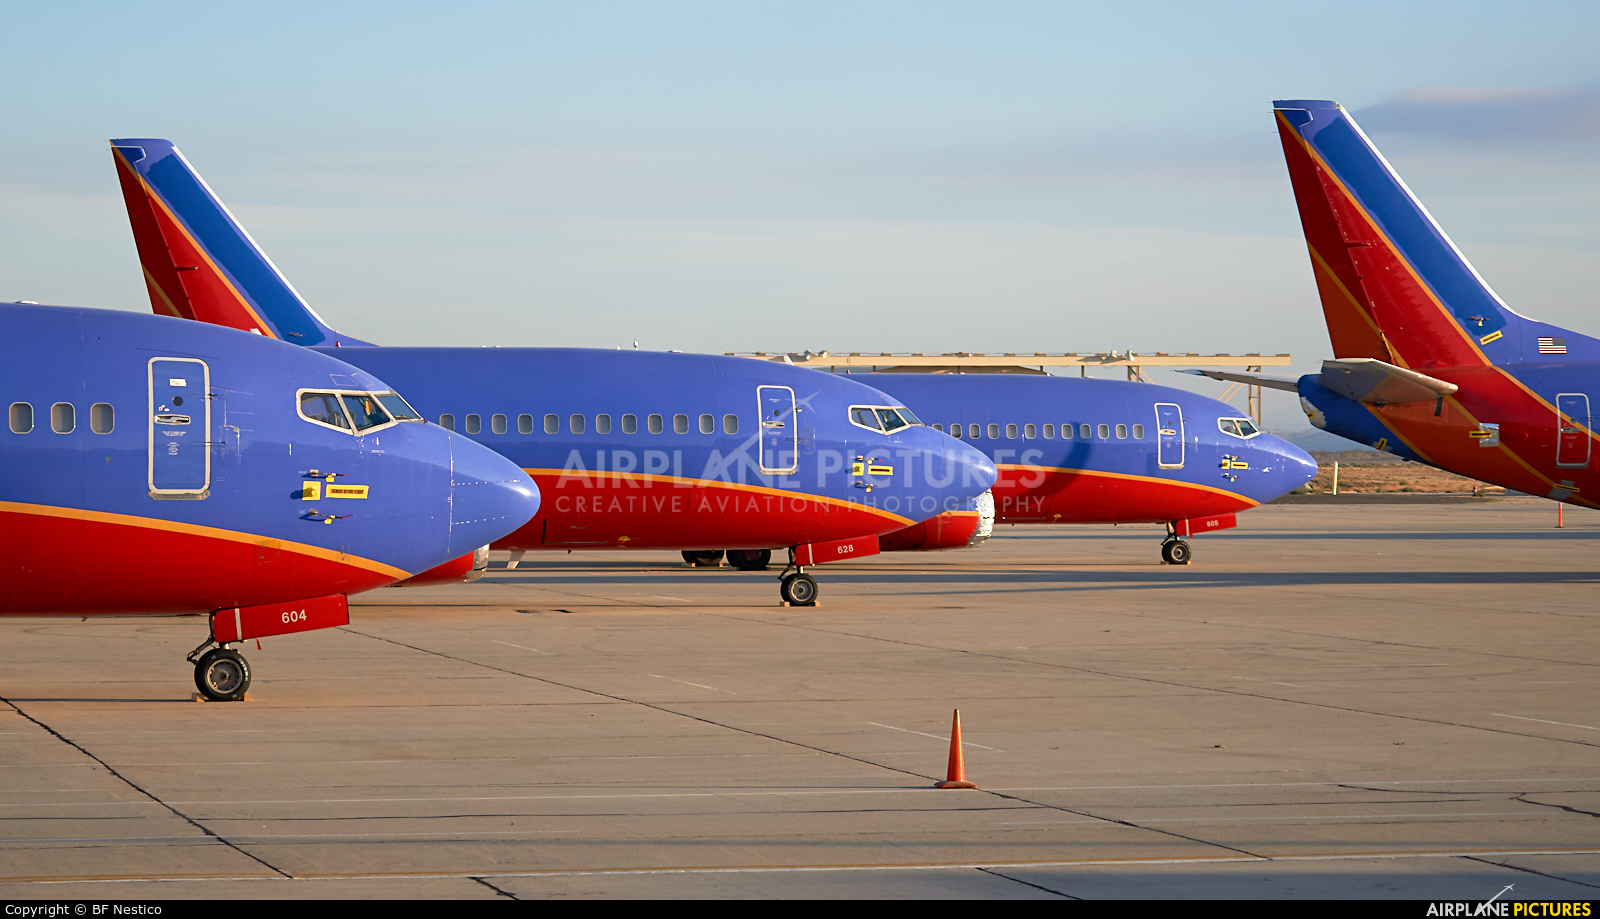 Southwest Airlines, Strategically Positioned For Long-Term Success